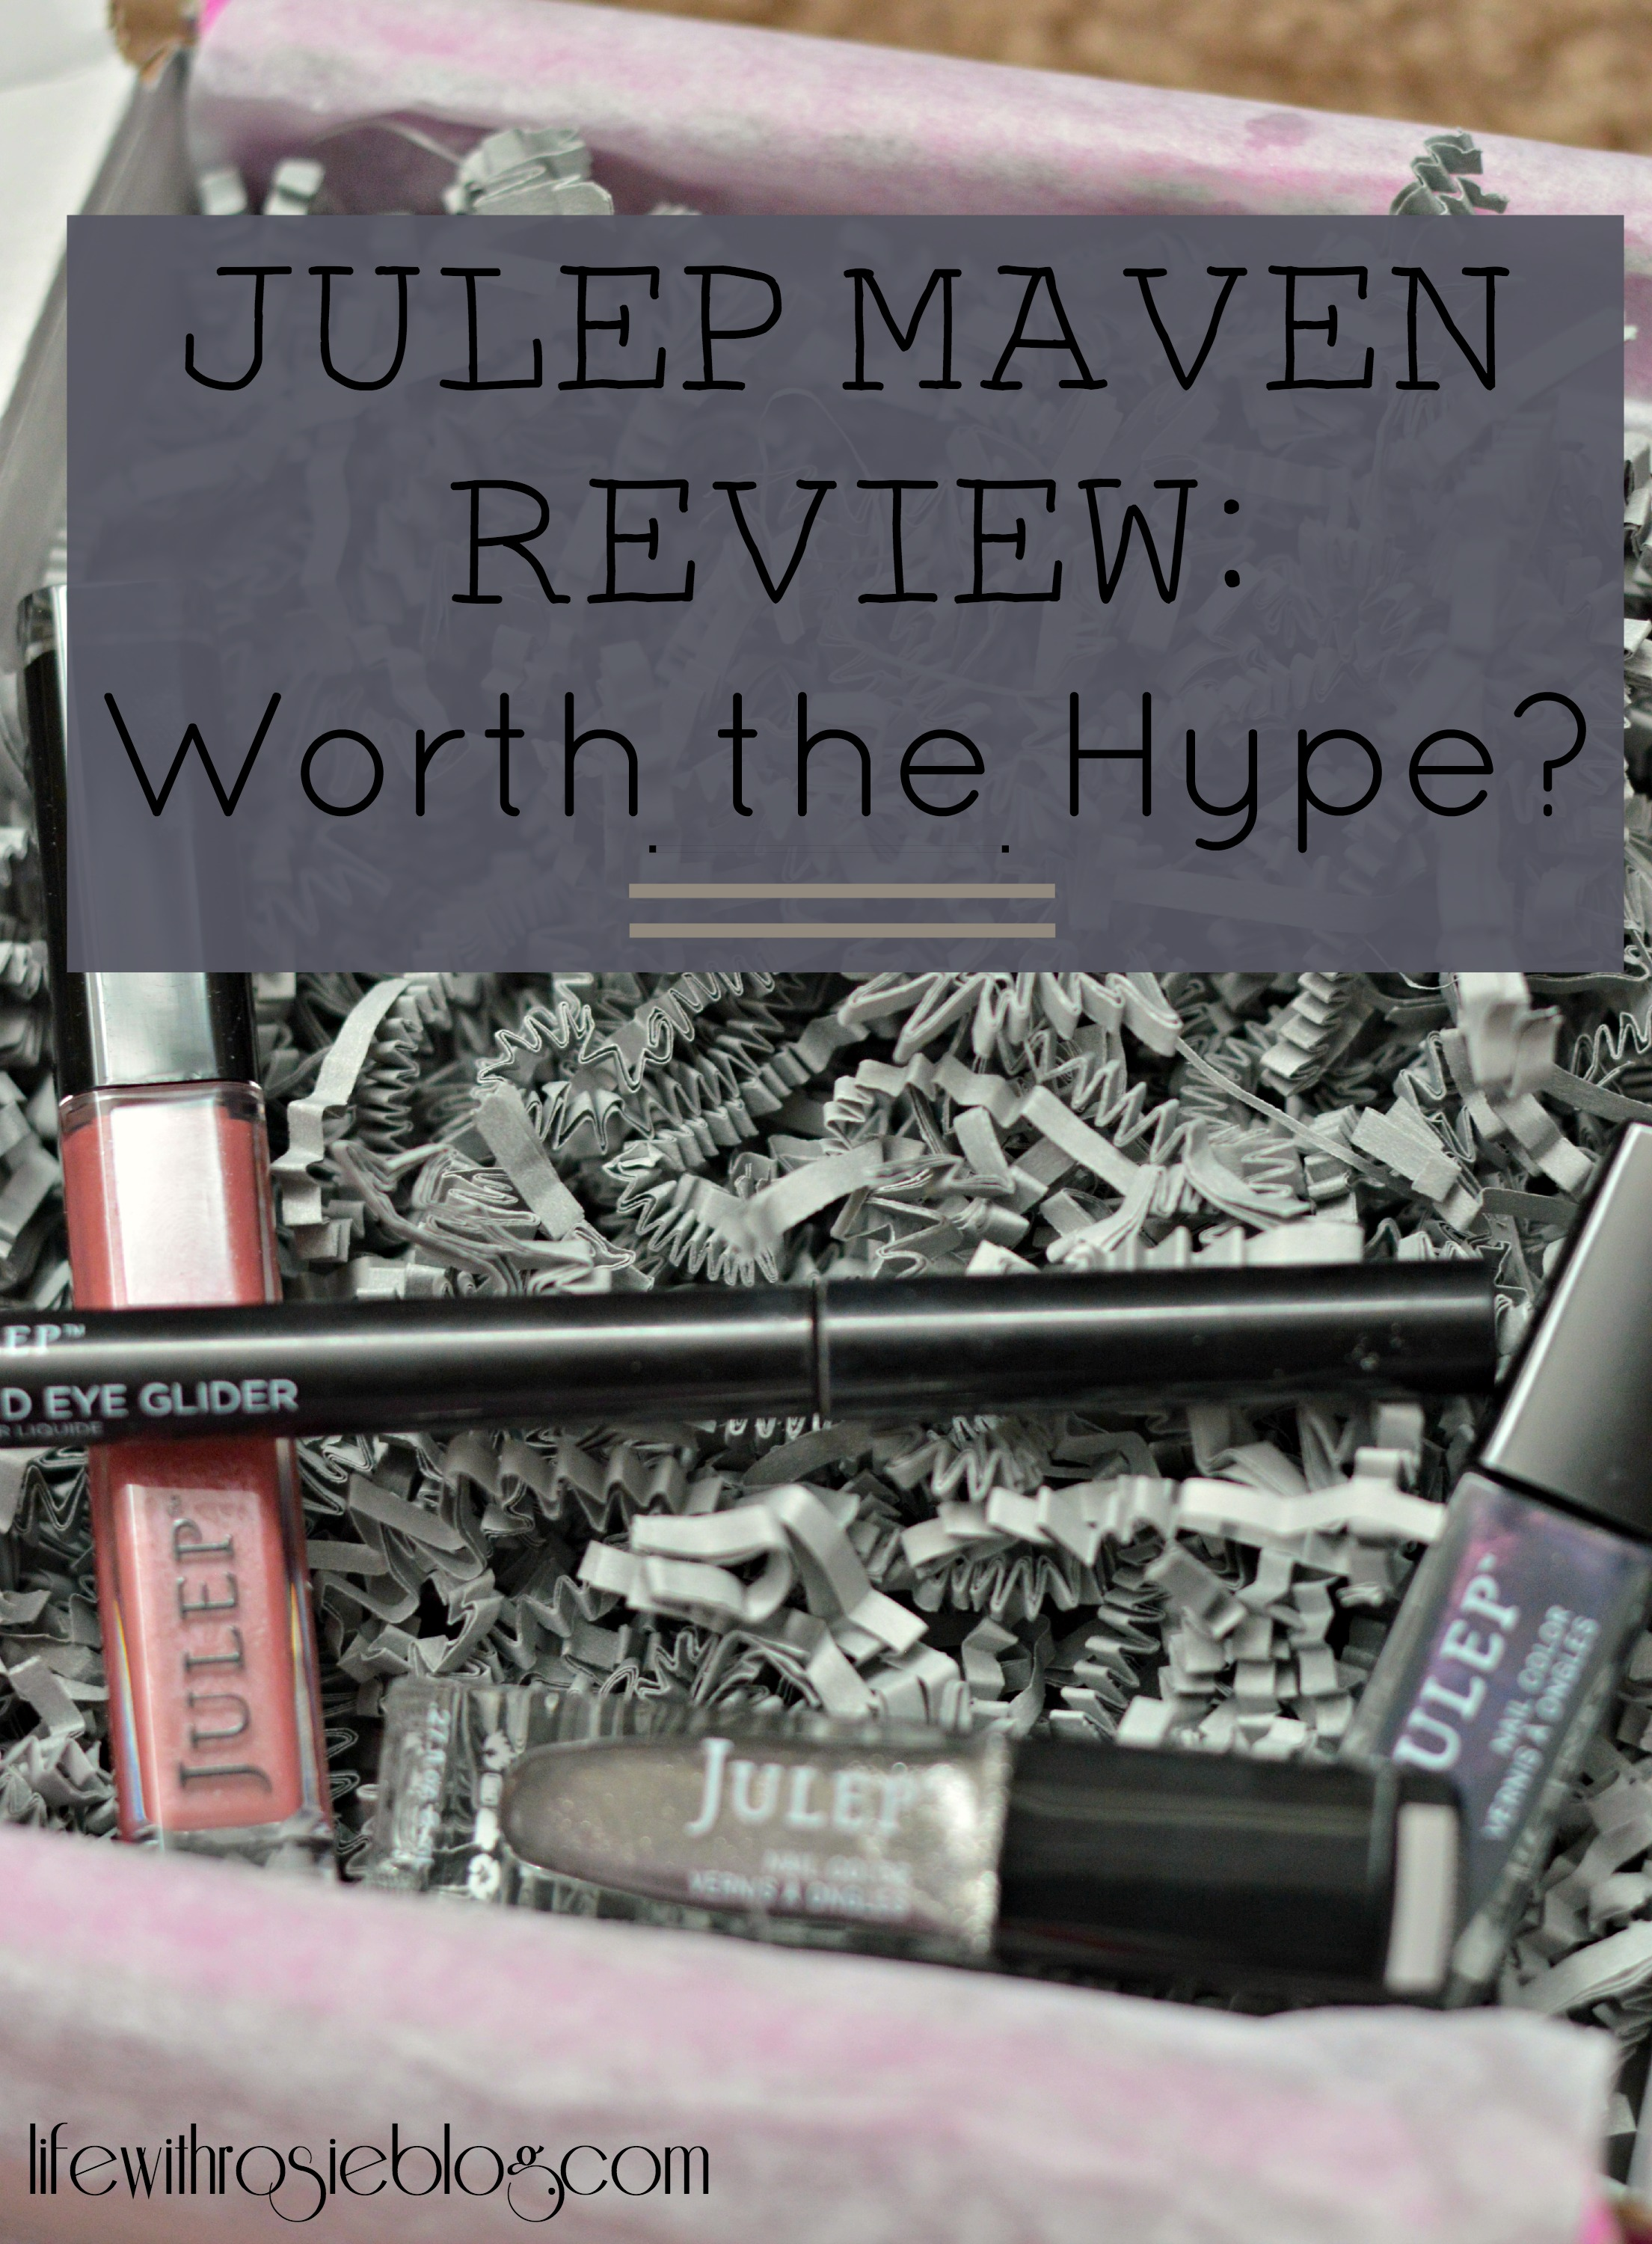 Julep Maven Review: Is it worth the hype? Before you sign up for this subscription box, you must read about my experience with it! // Life with Rosie